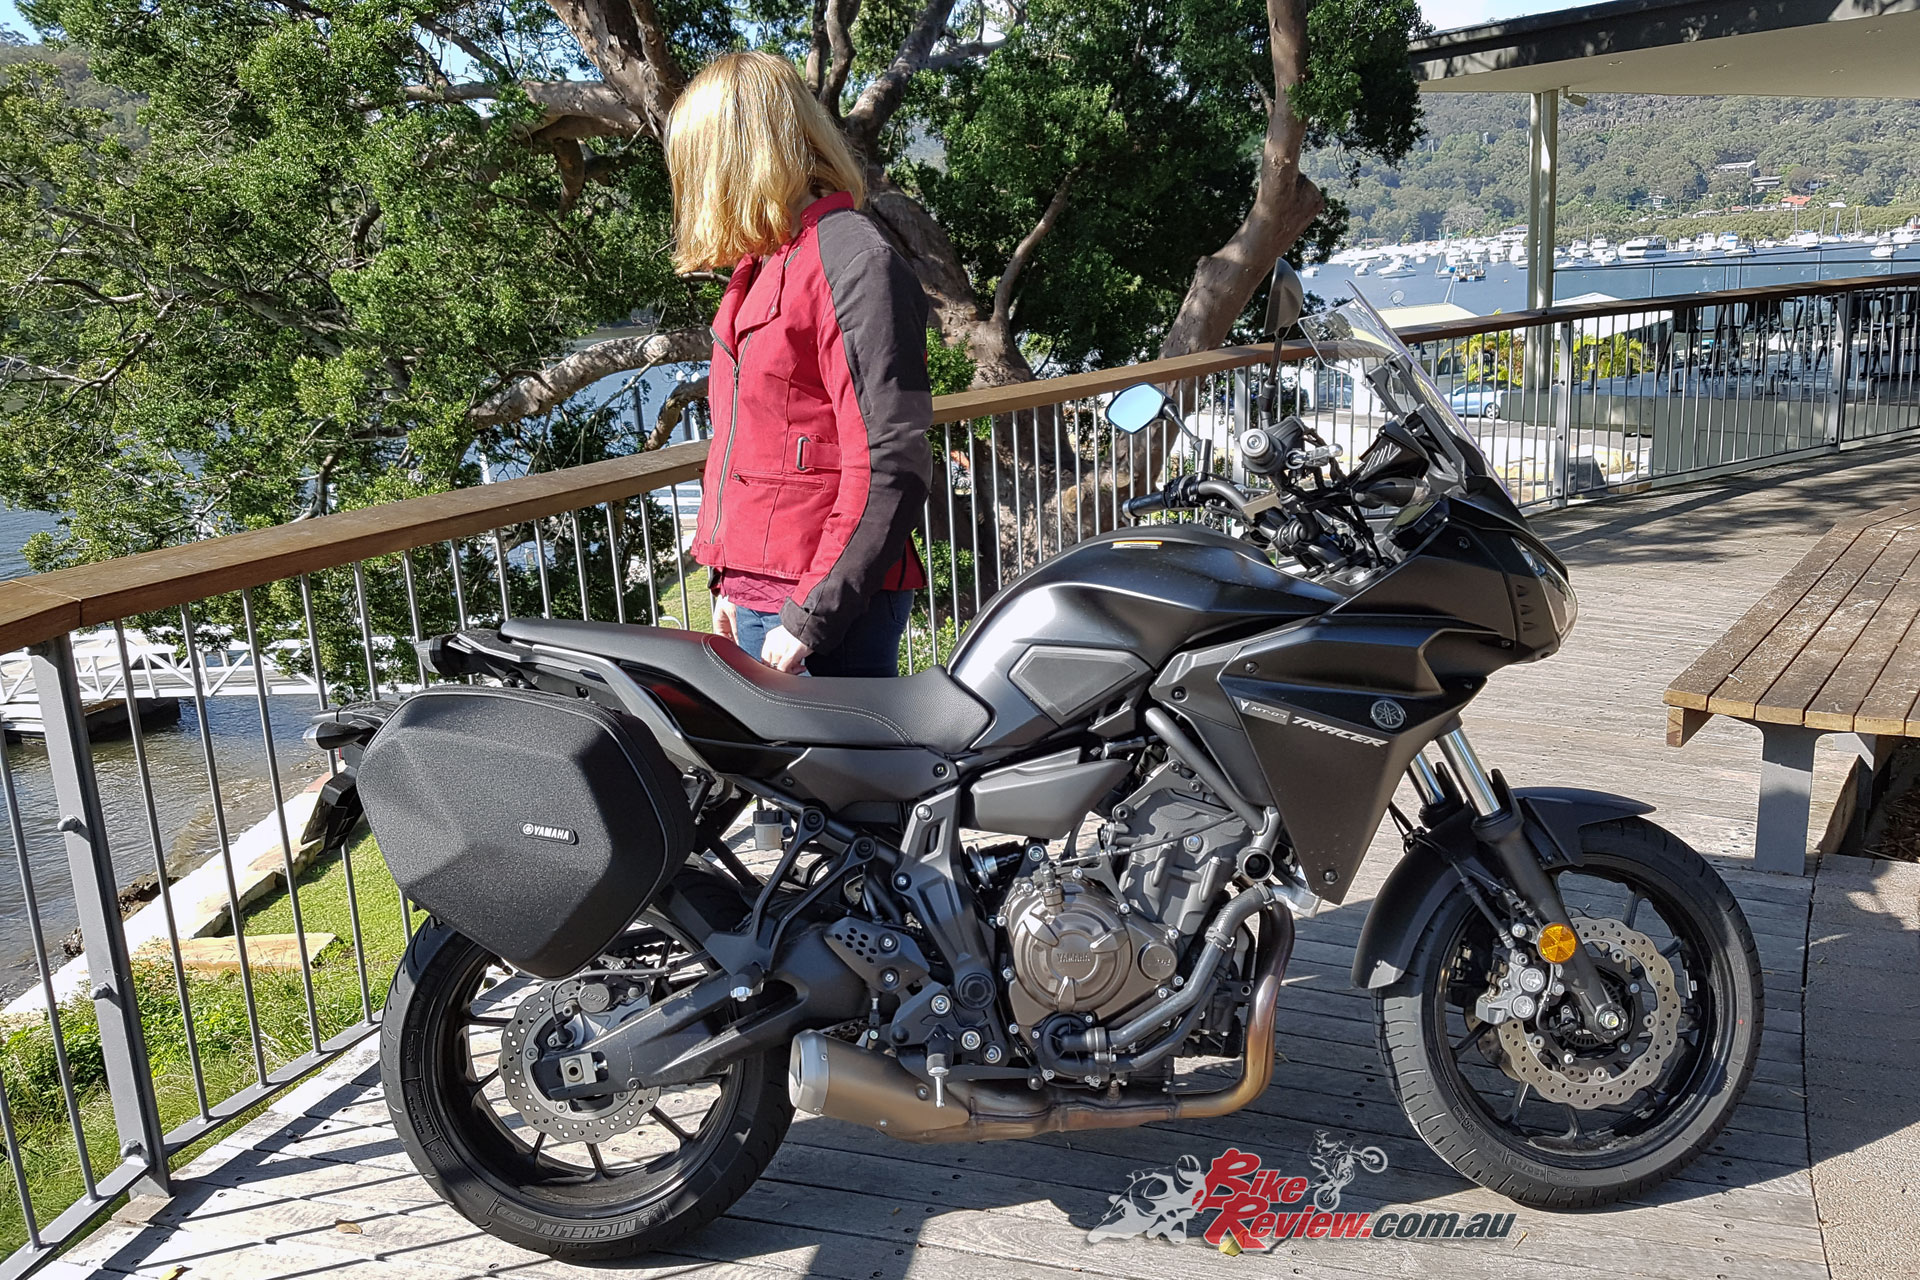 Sam our pillion reviewer with the Yamaha MT-07 Tracer